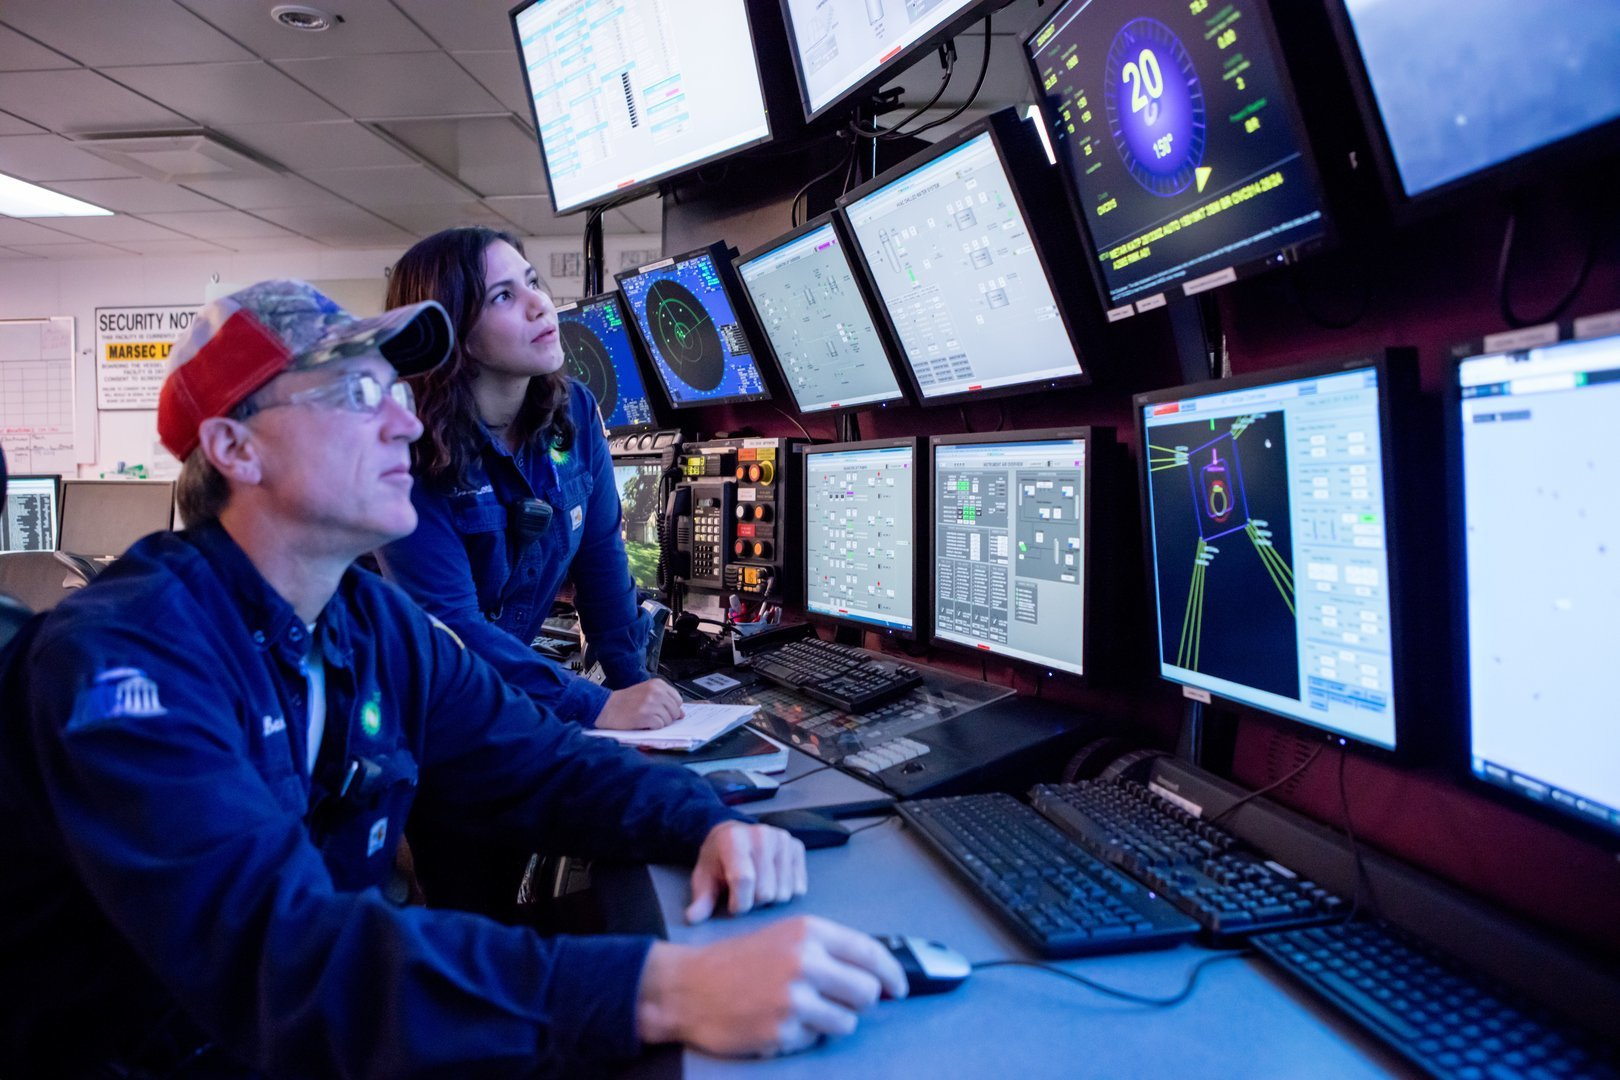 BP deploys advanced analytics solution, developed with BHGE, on Gulf of Mexico platforms. Plant Operations Advisor will be installed on BP's upstream assets around the world.